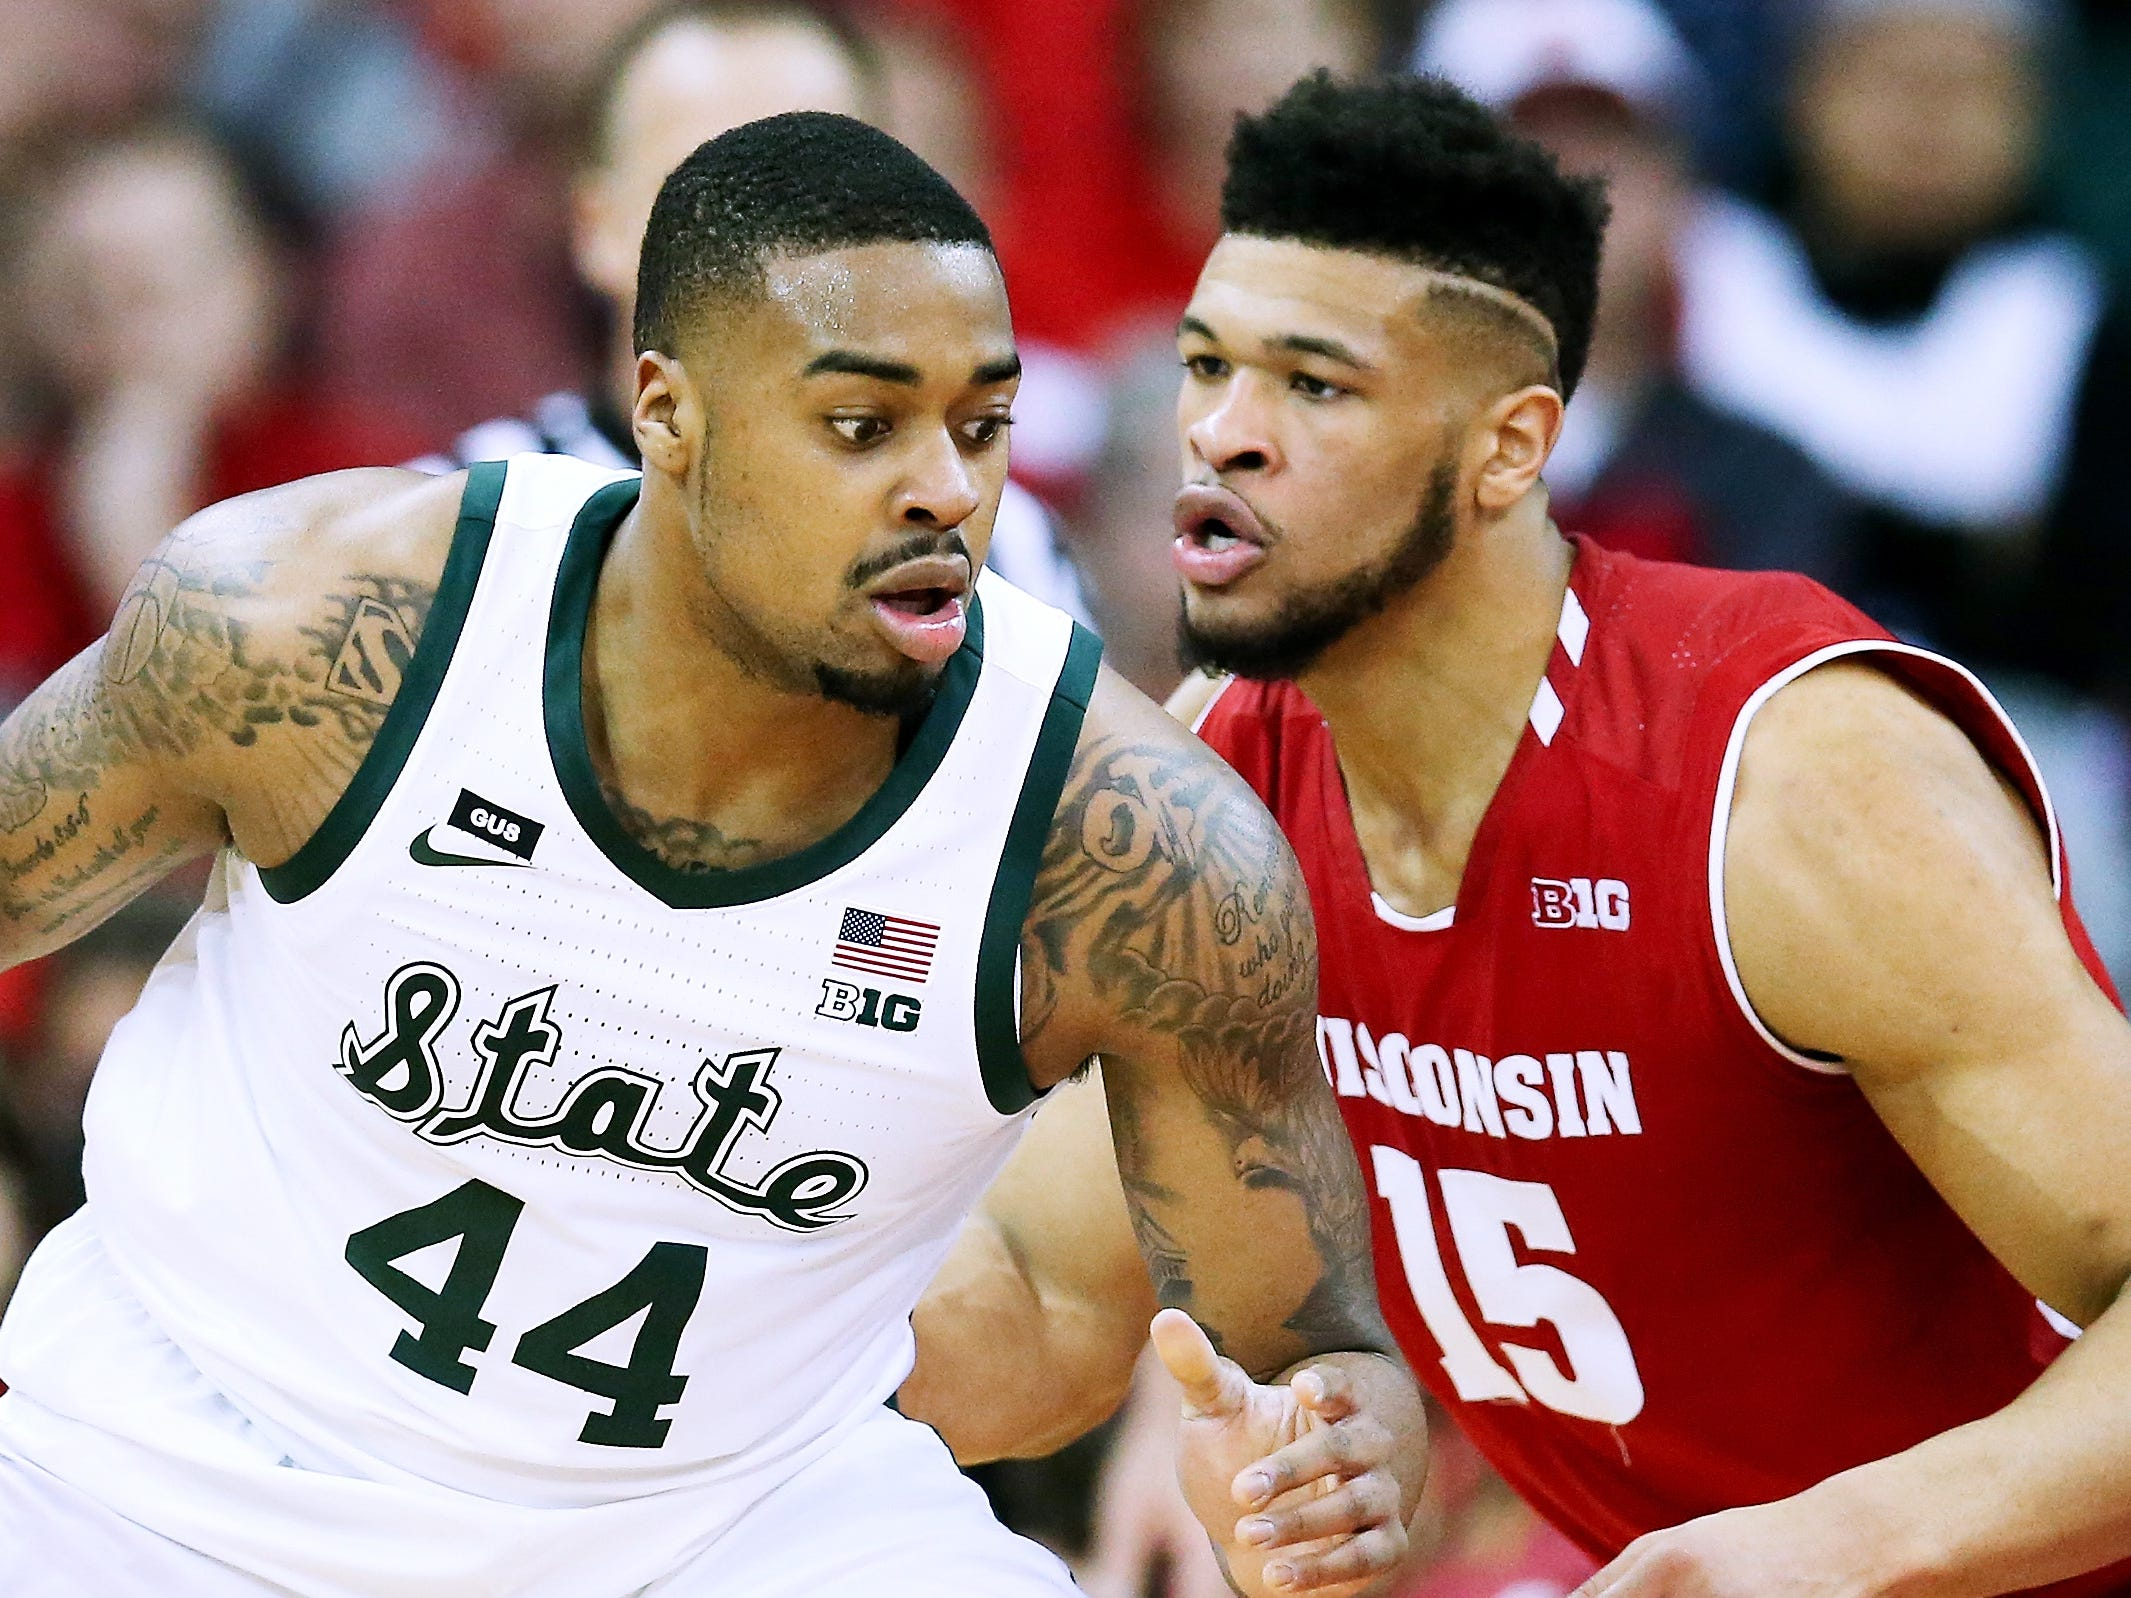 Michigan State's Nick Ward (44) dribbles the ball while being guarded by Wisconsin's Charles Thomas IV (15) in the first half at the Kohl Center on February 12, 2019 in Madison, Wisconsin.